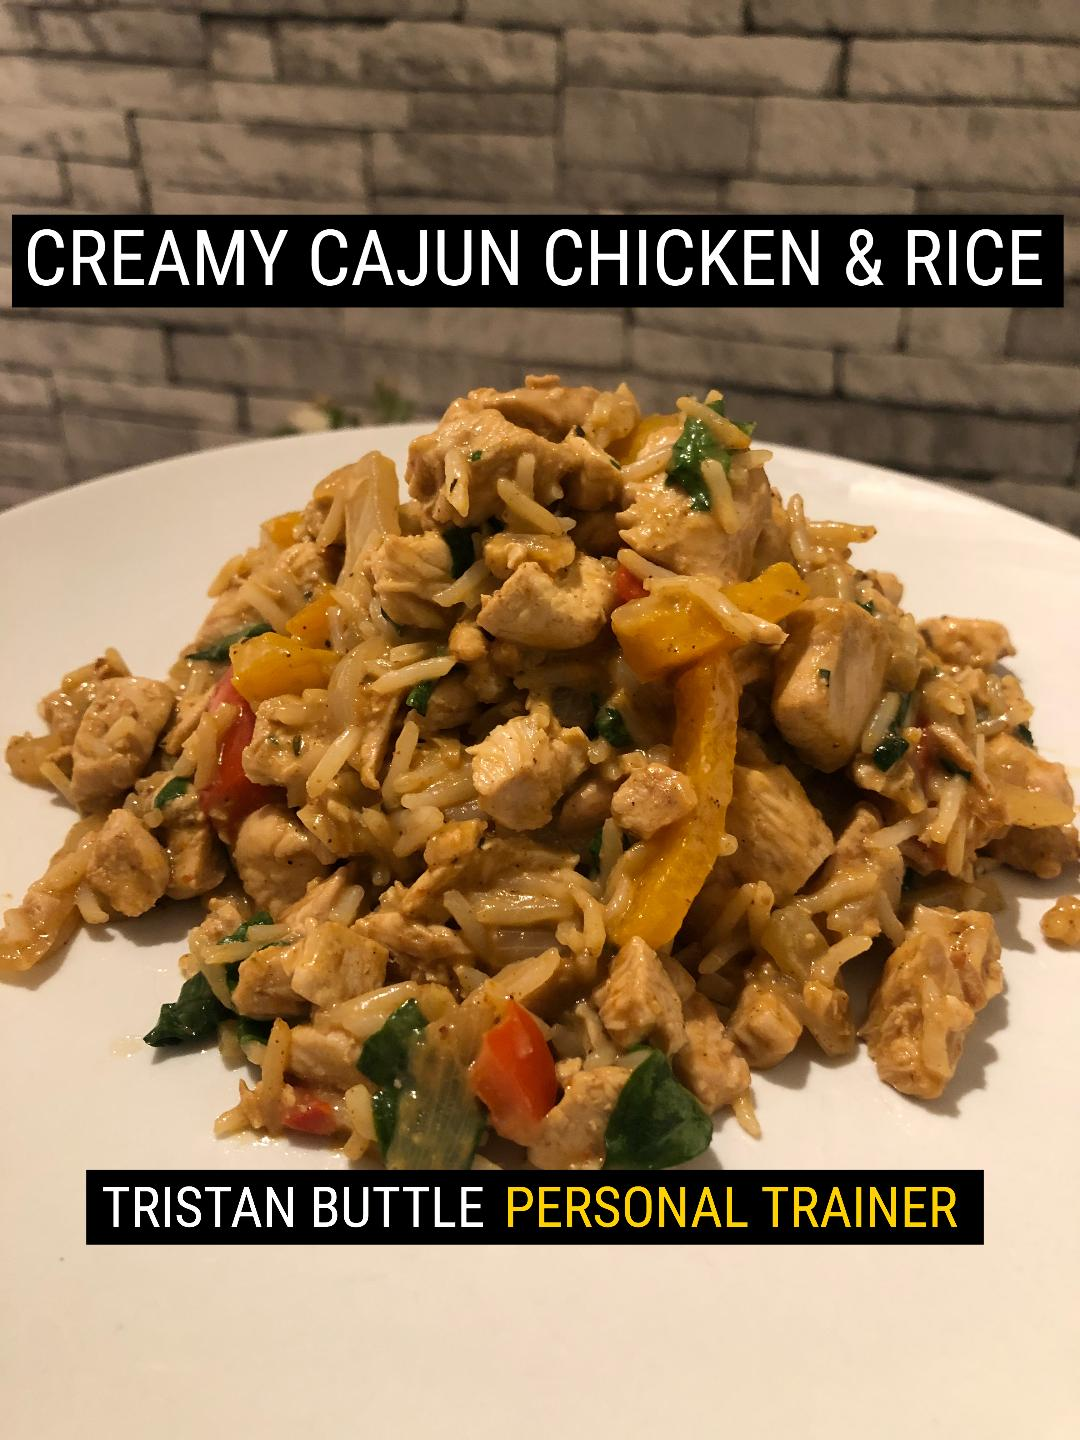 creamy cajun chicken & rice